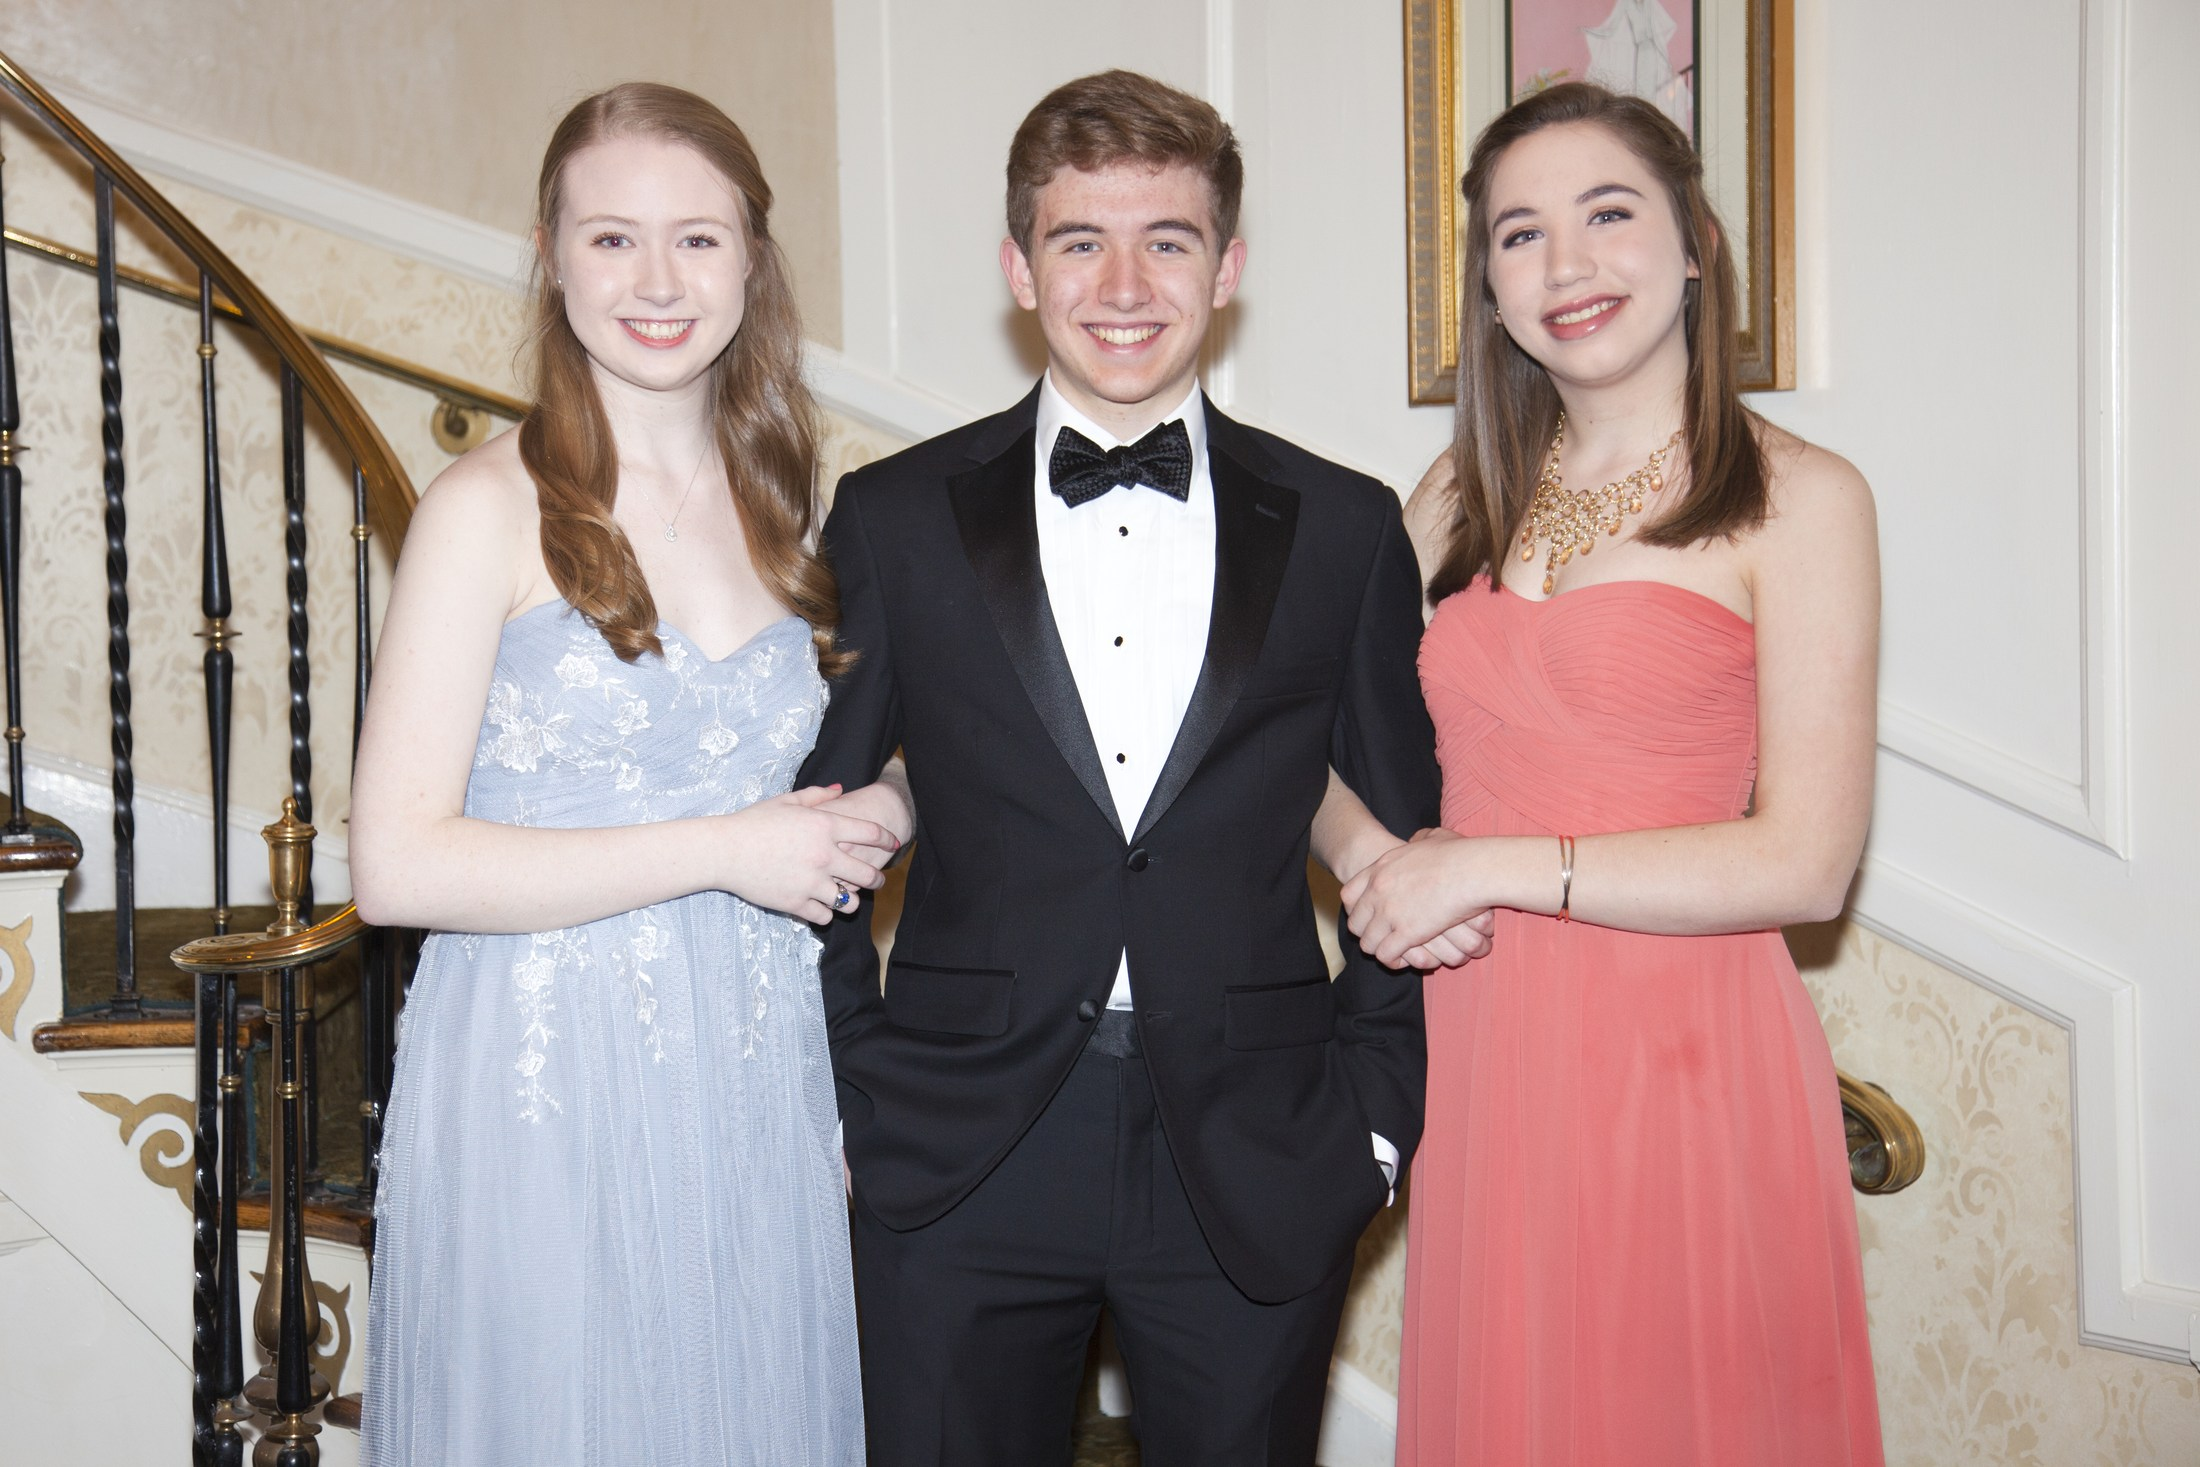 Catholic High School Students Ready For Prom Night In Morristown, NJ Image - Academy of St. Elizabeth